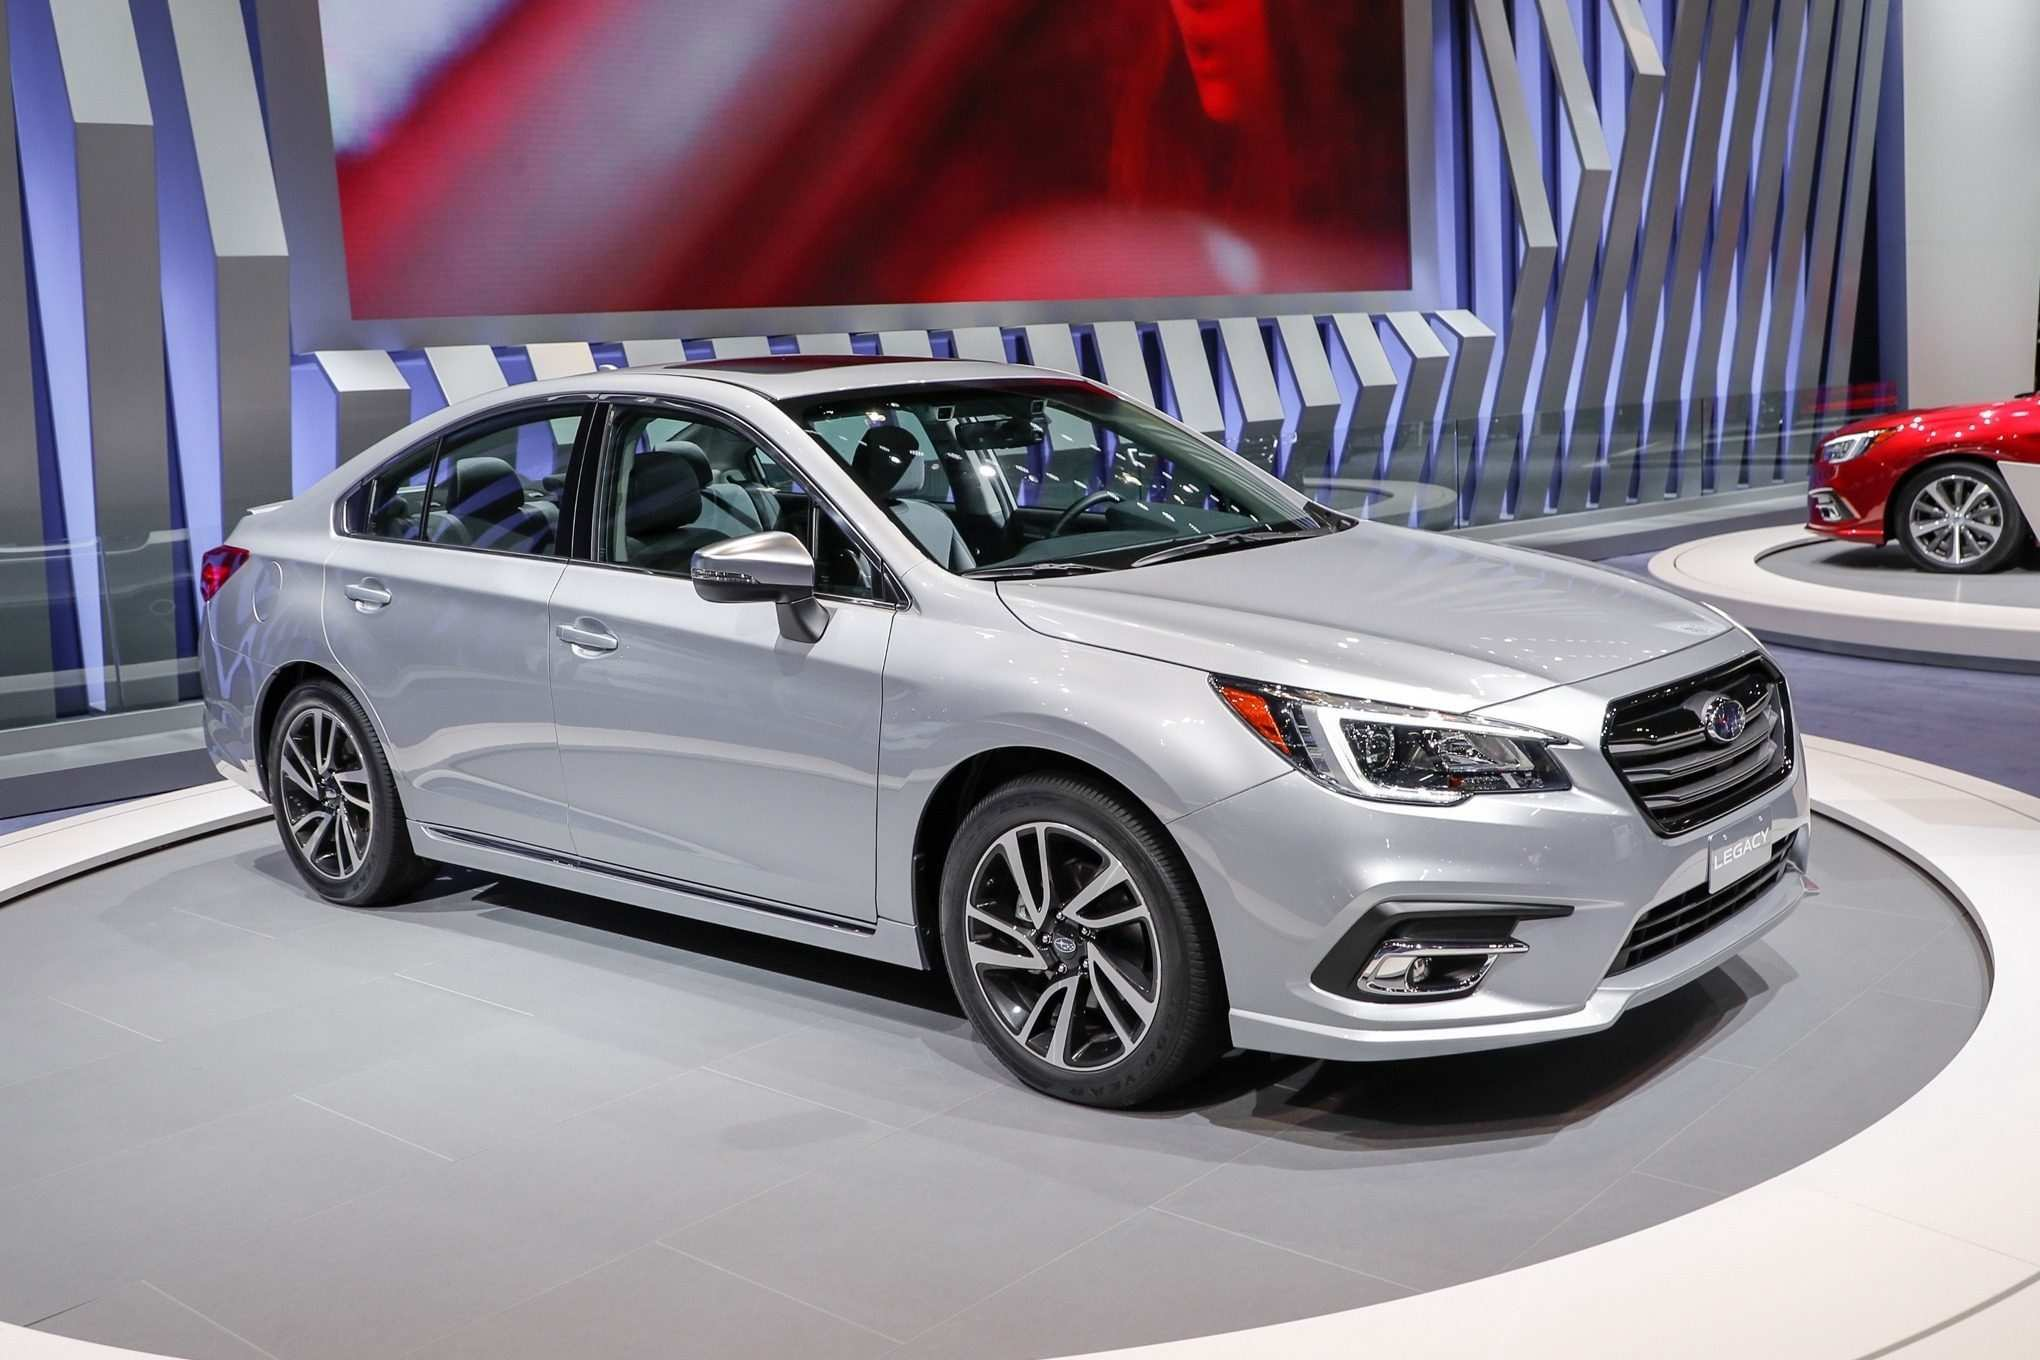 38 Best Review New Subaru Legacy 2019 Gt Review Research New for New Subaru Legacy 2019 Gt Review